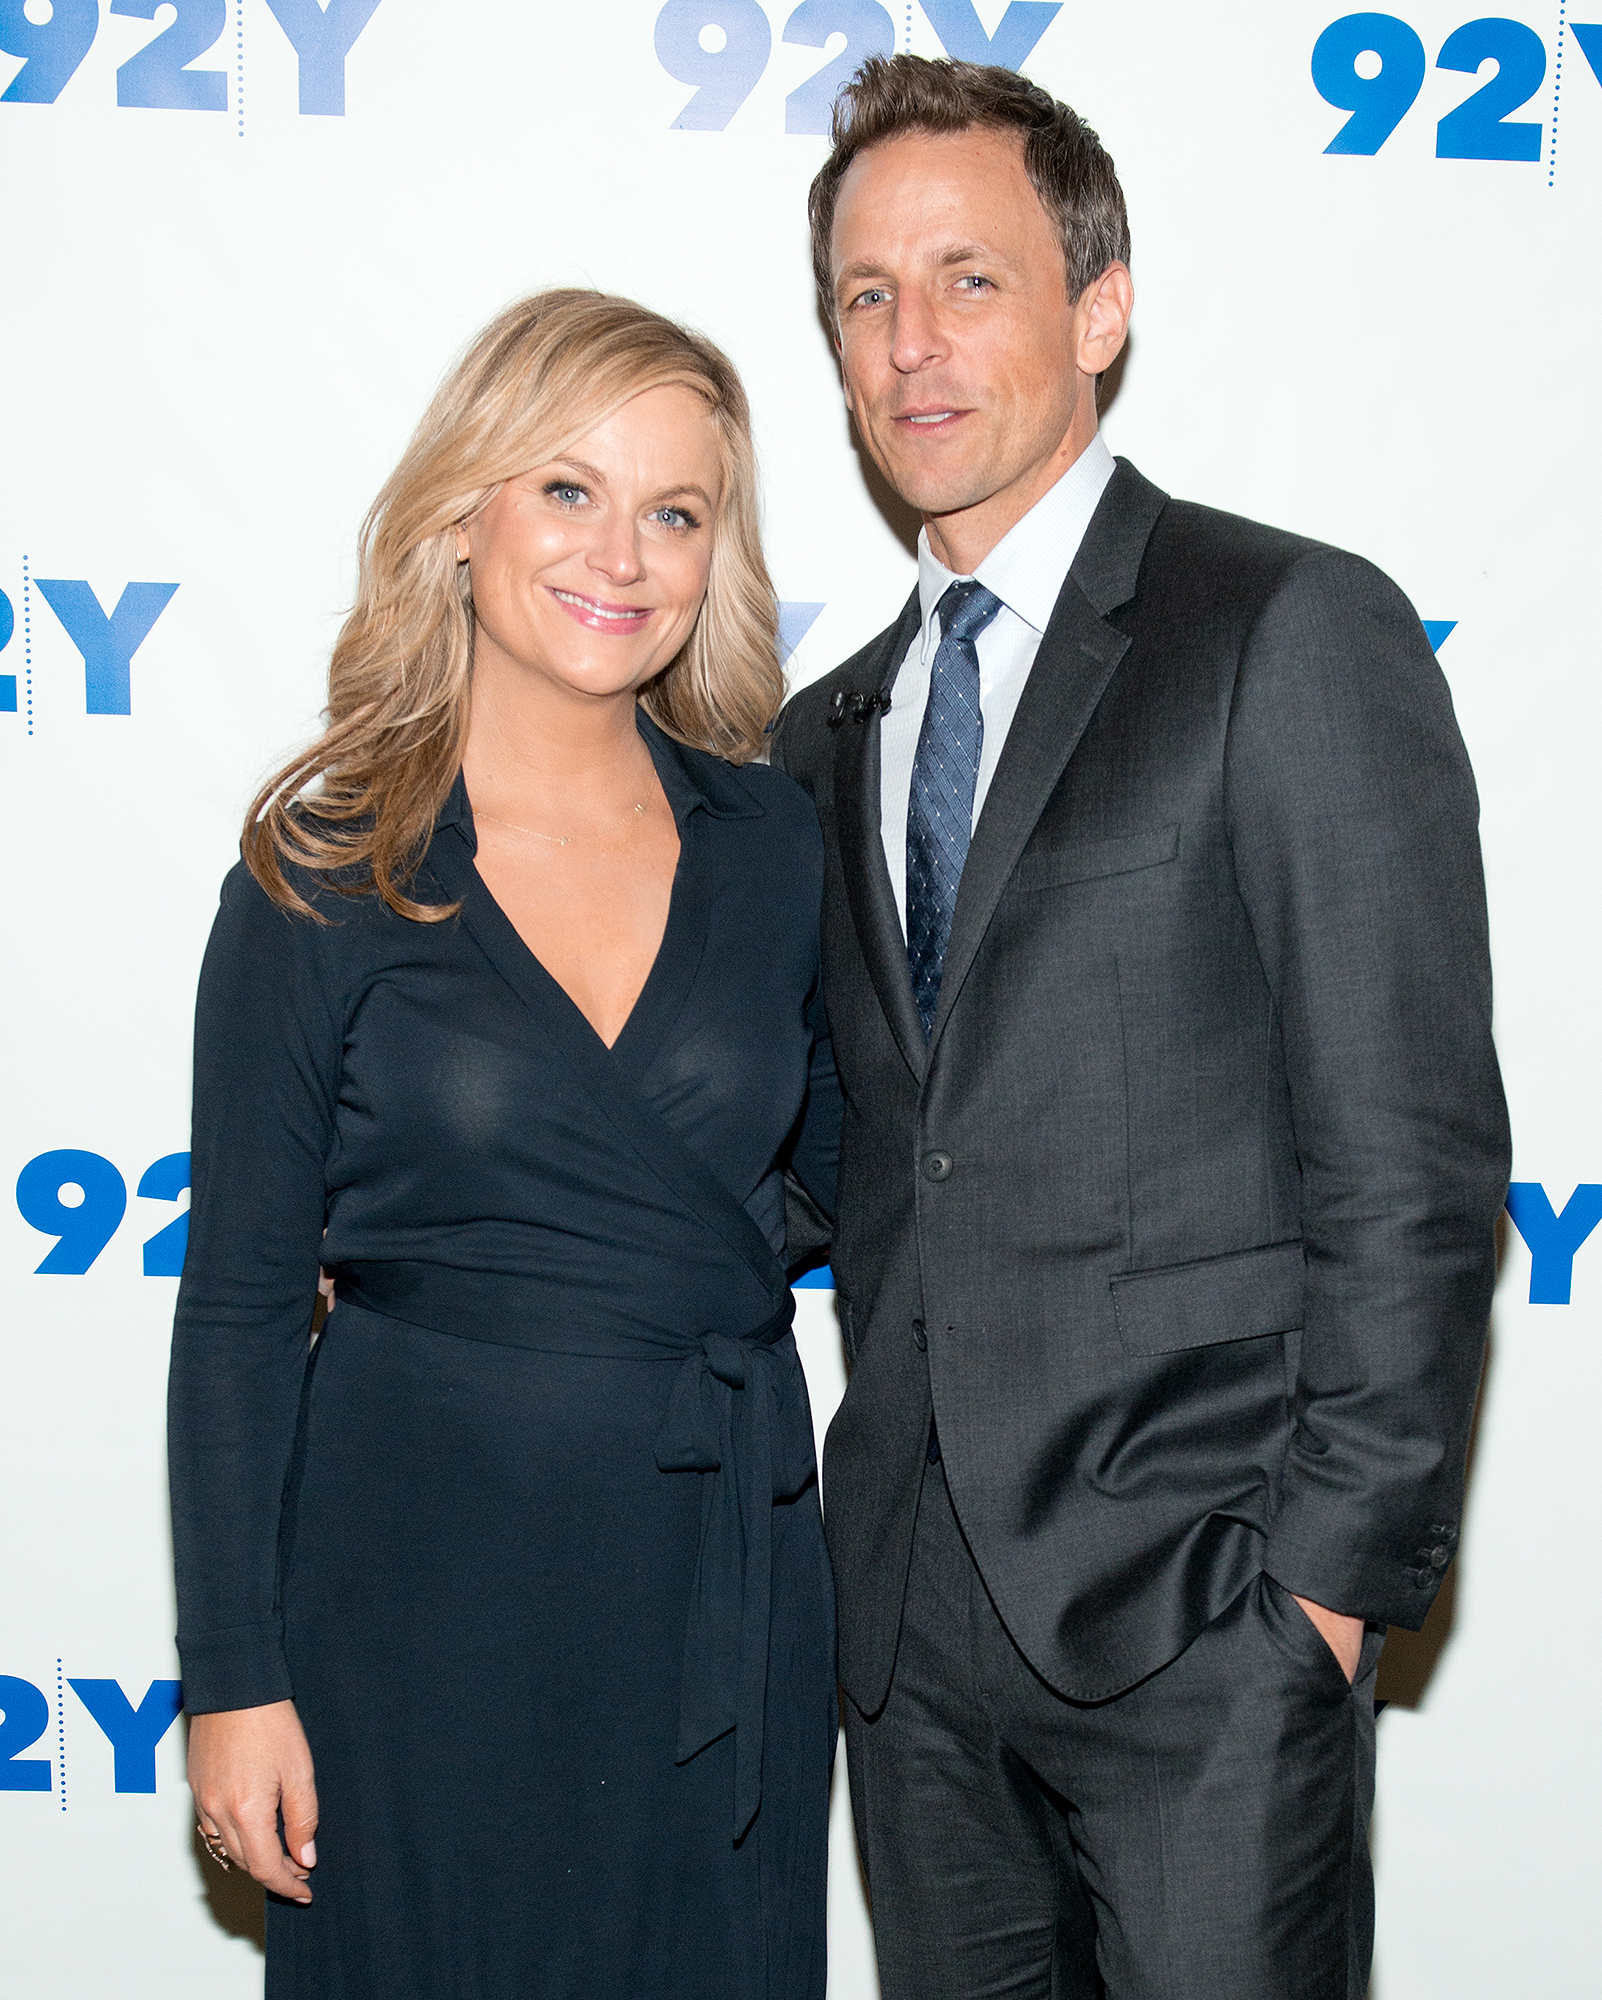 92Y Talks: Amy Poehler With Seth Meyers